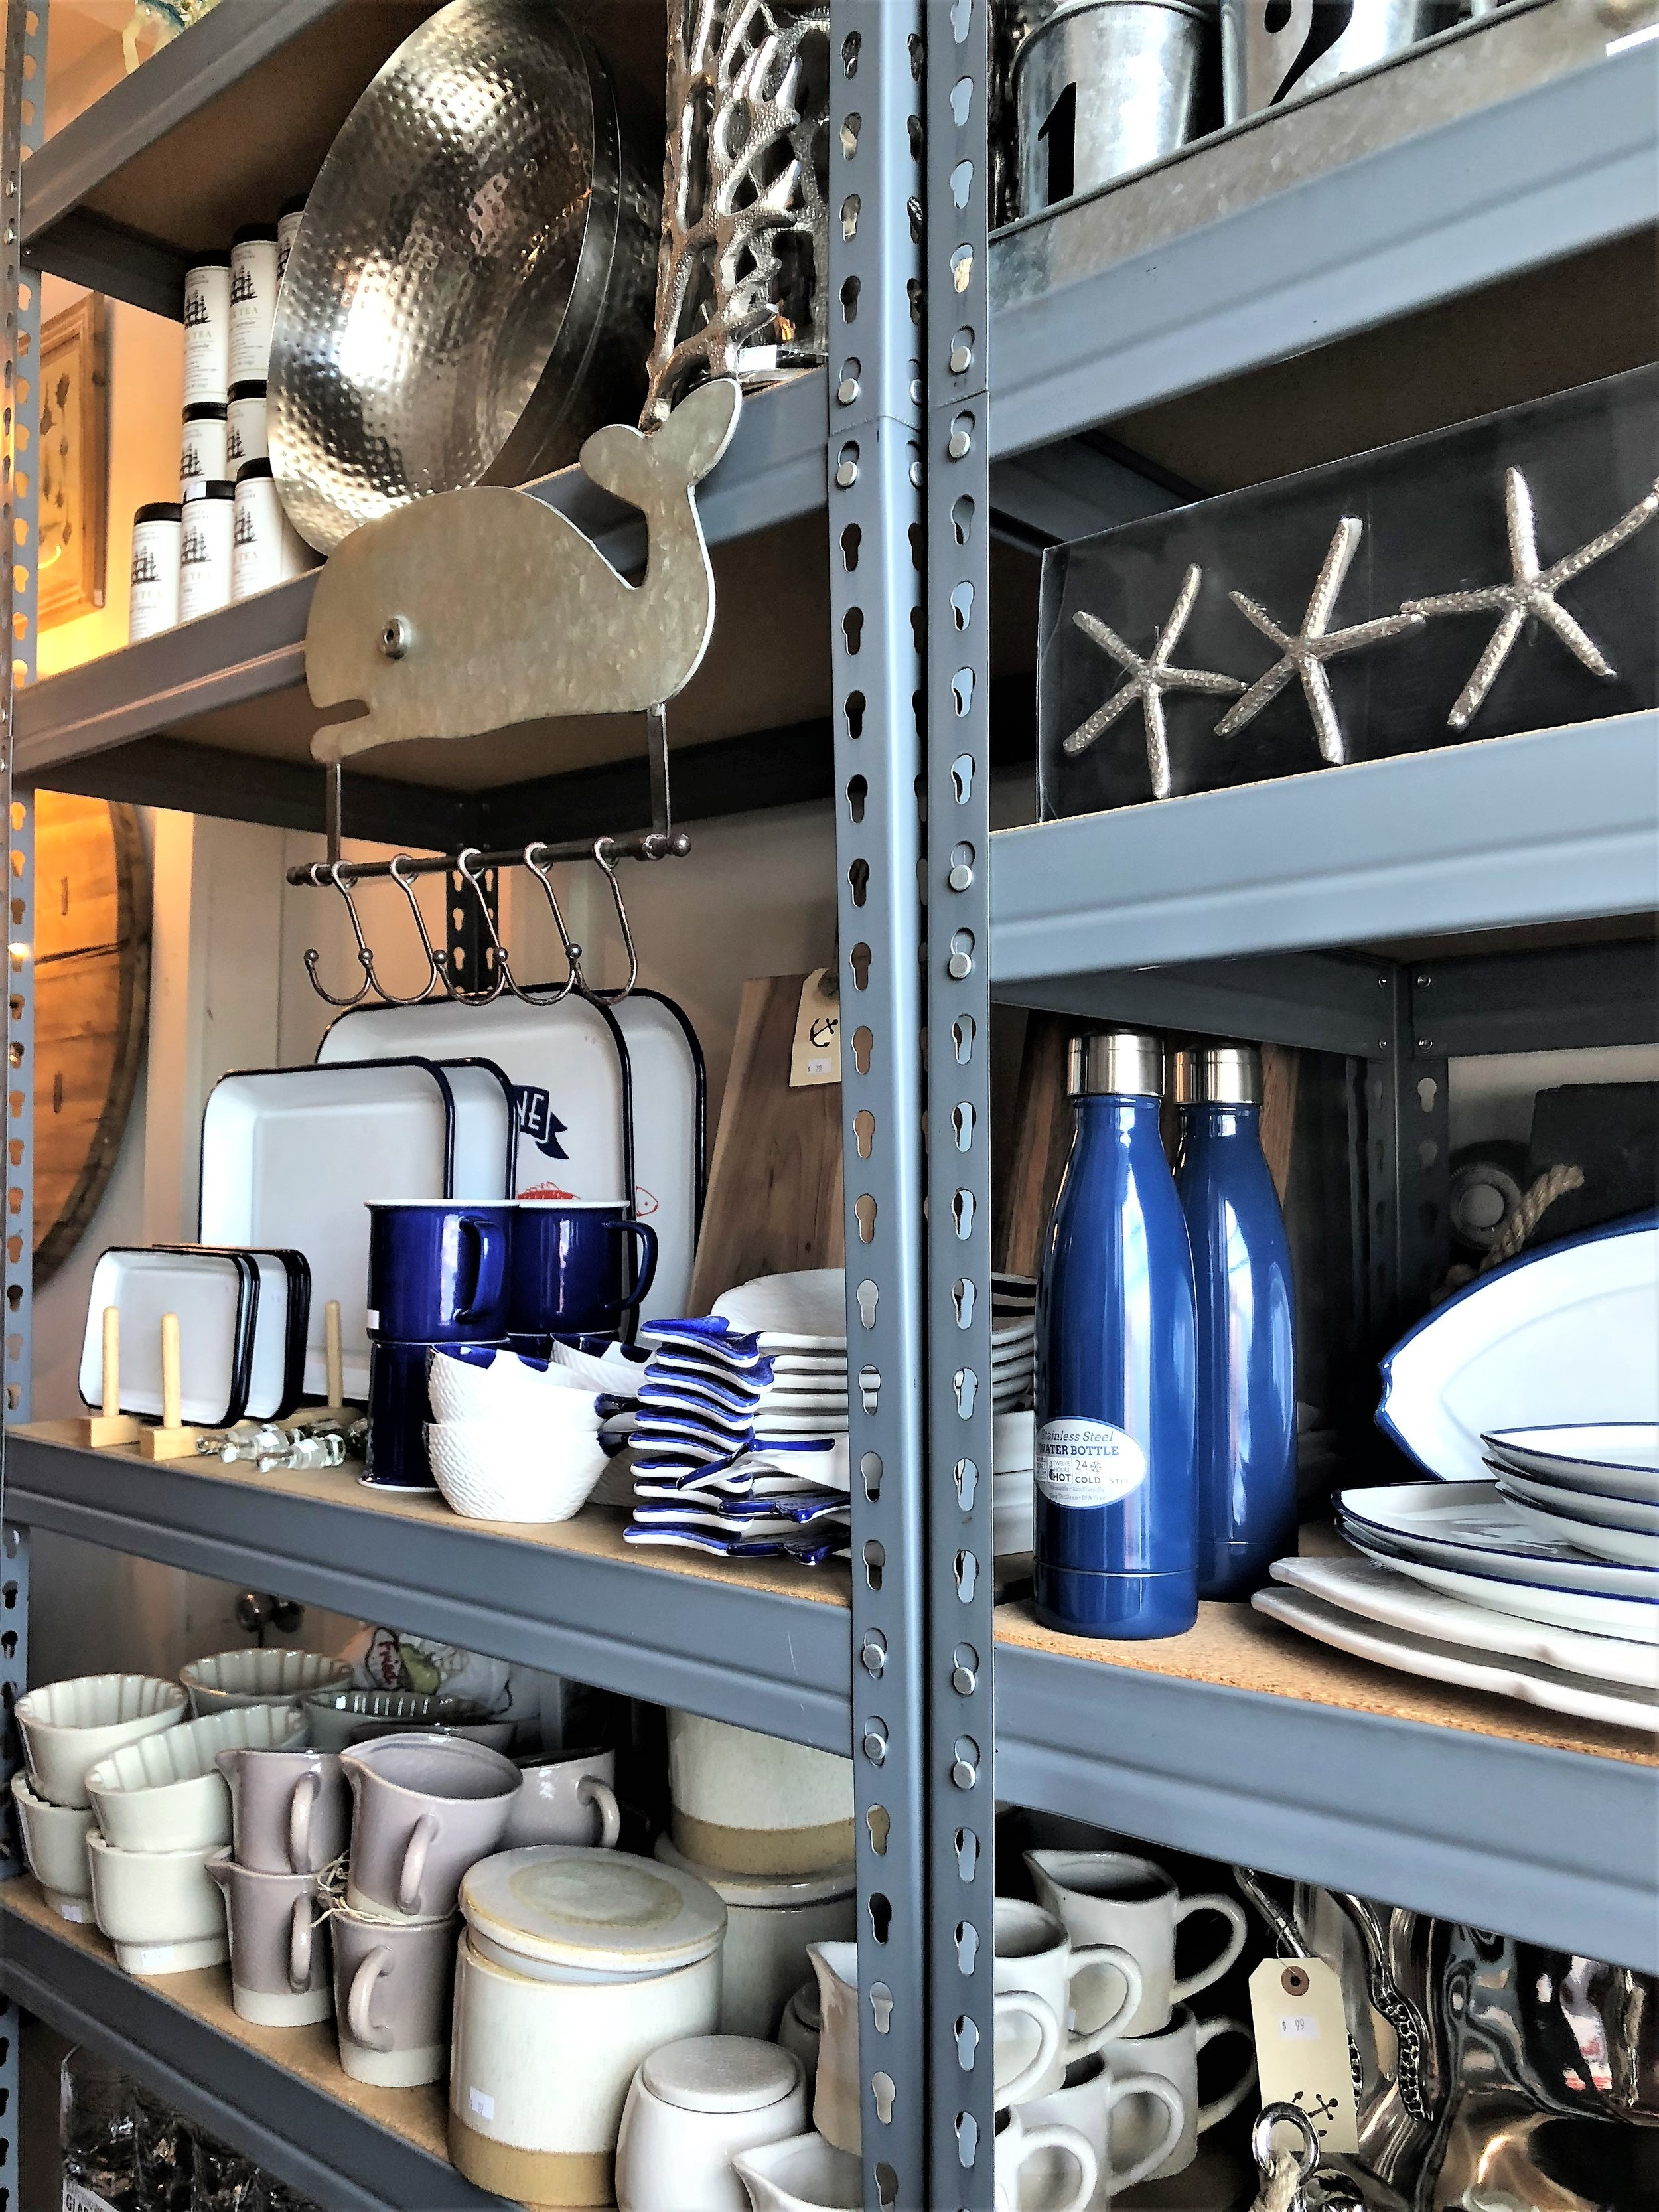 Goods is a great gift store full of home goods with a heavy nautical theme. They also carry beauty products such as soaps and lotions. I kinda regret not grabbing a set of loungewear that I left behind….